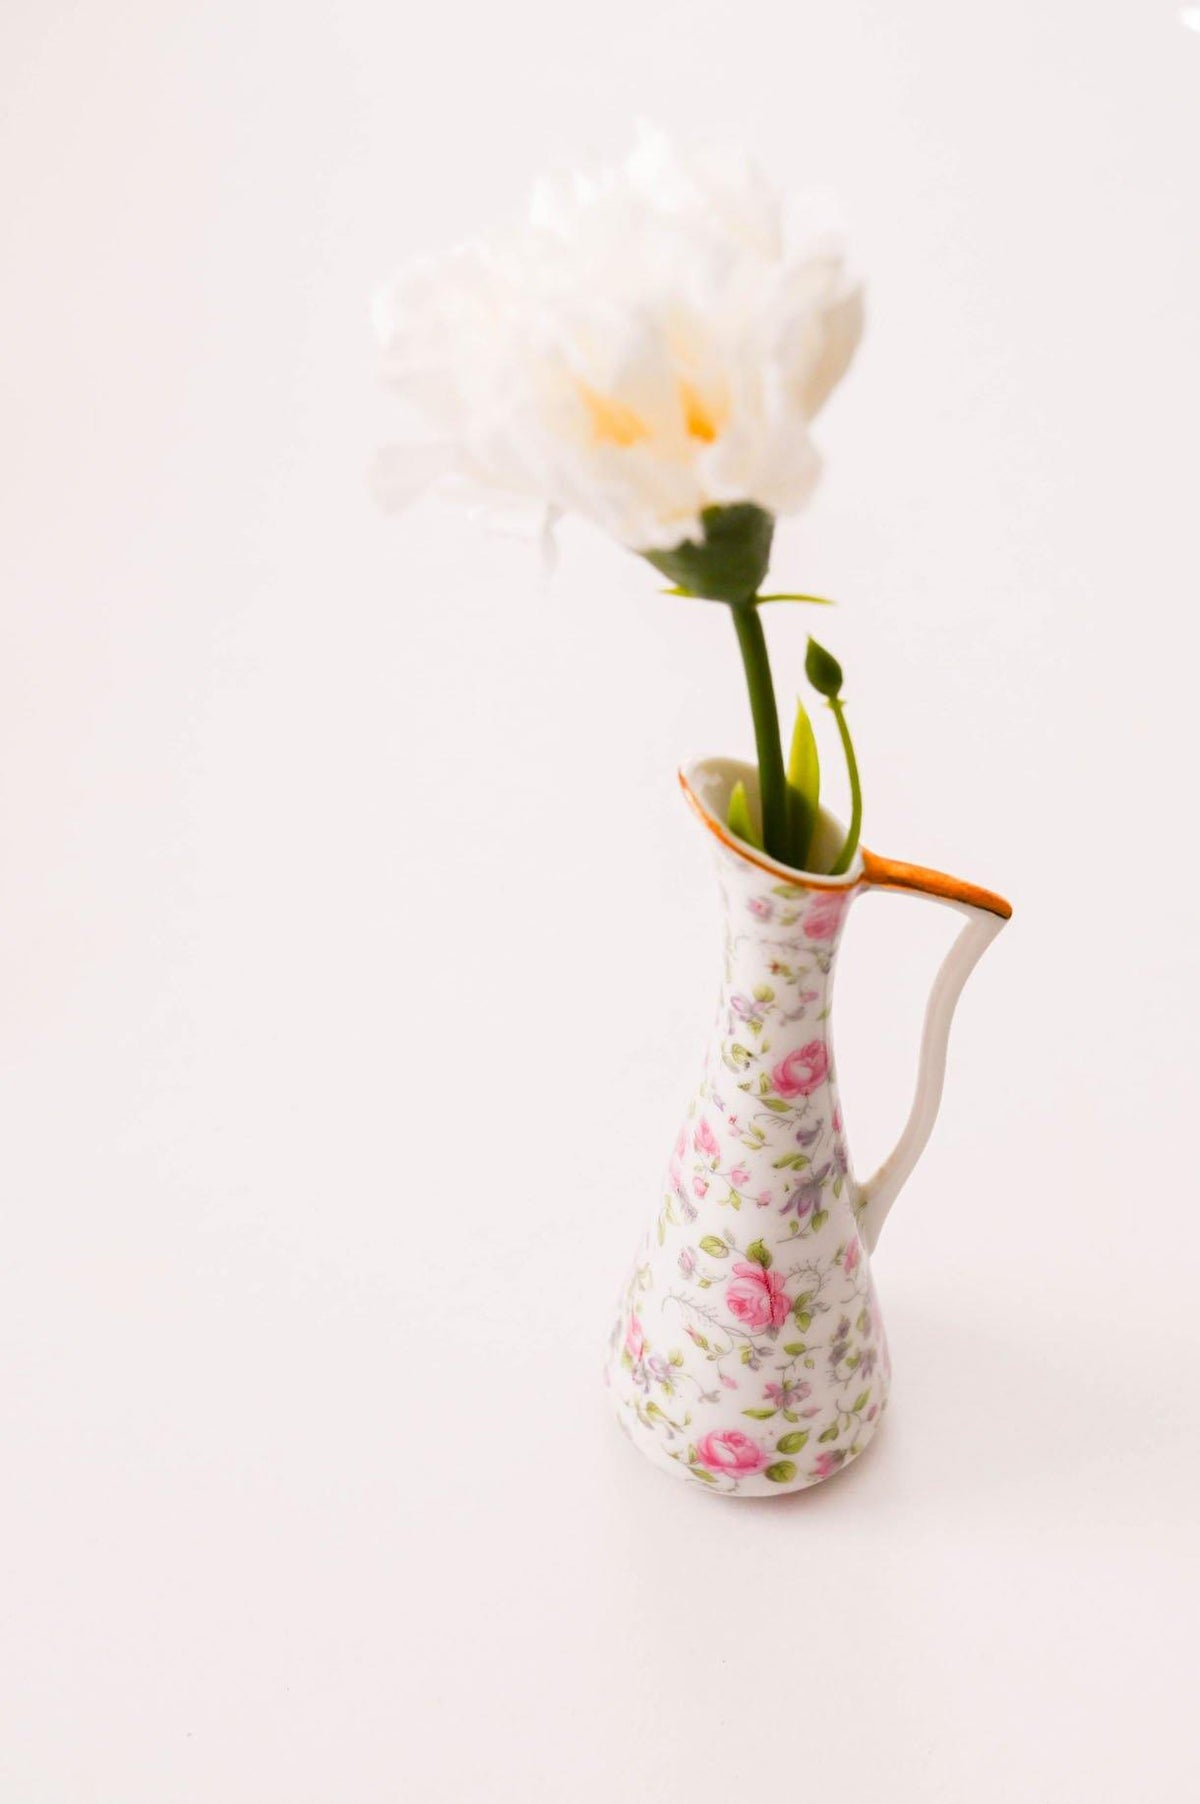 Vintage Dainty Floral Pitcher Vase from Sweet and Spark.